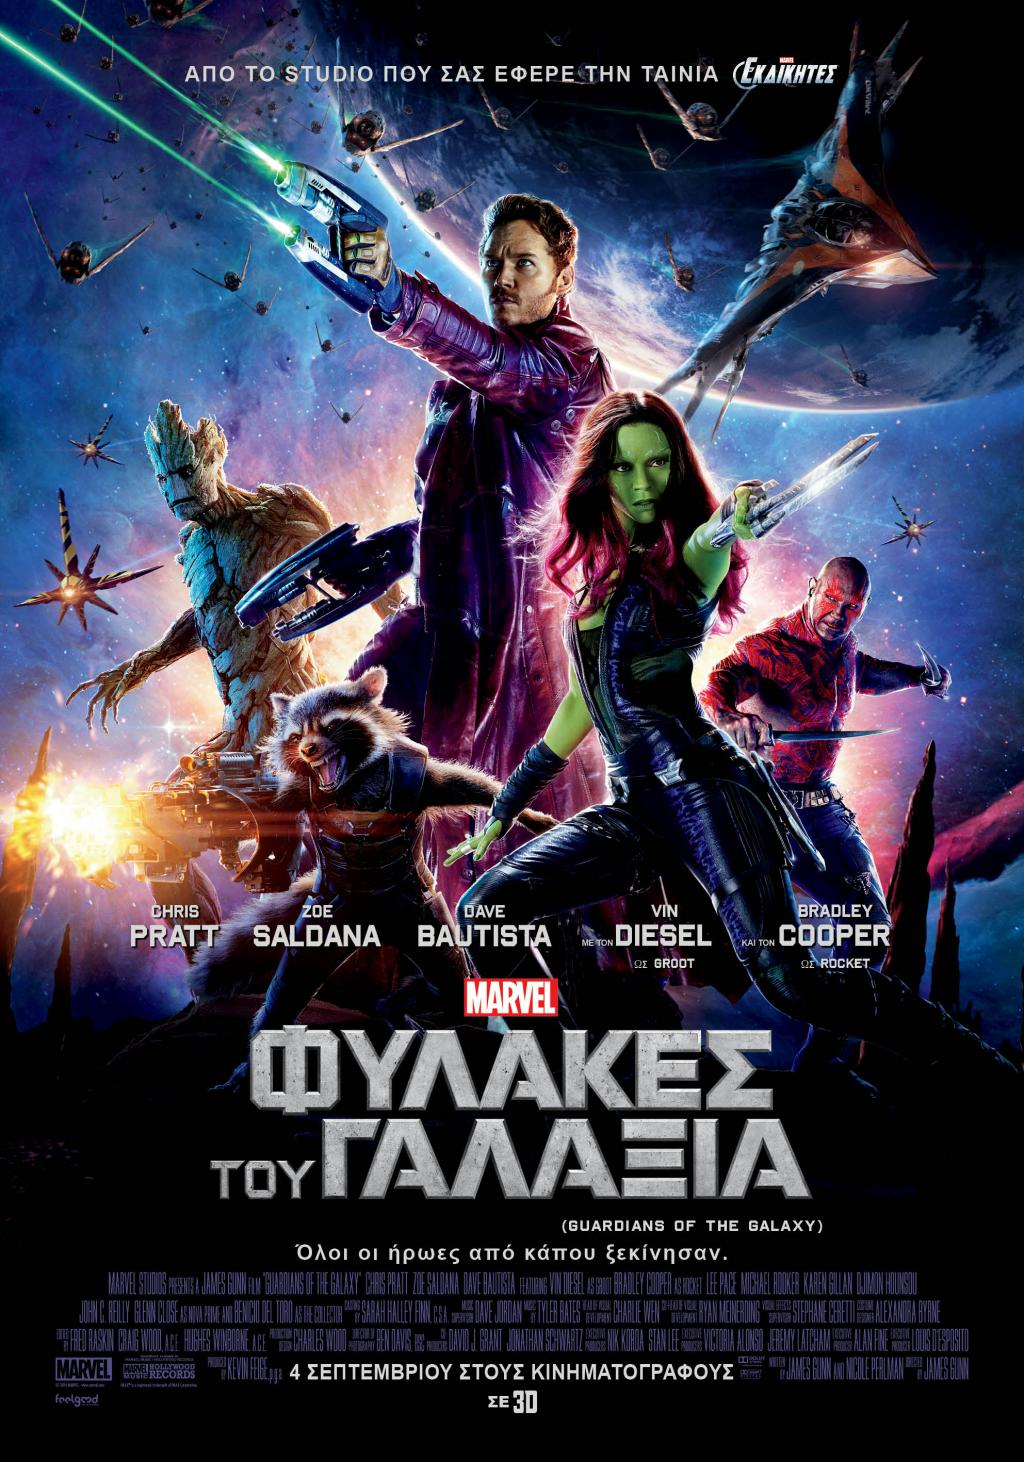 Guardians of the Galaxy - GR poster